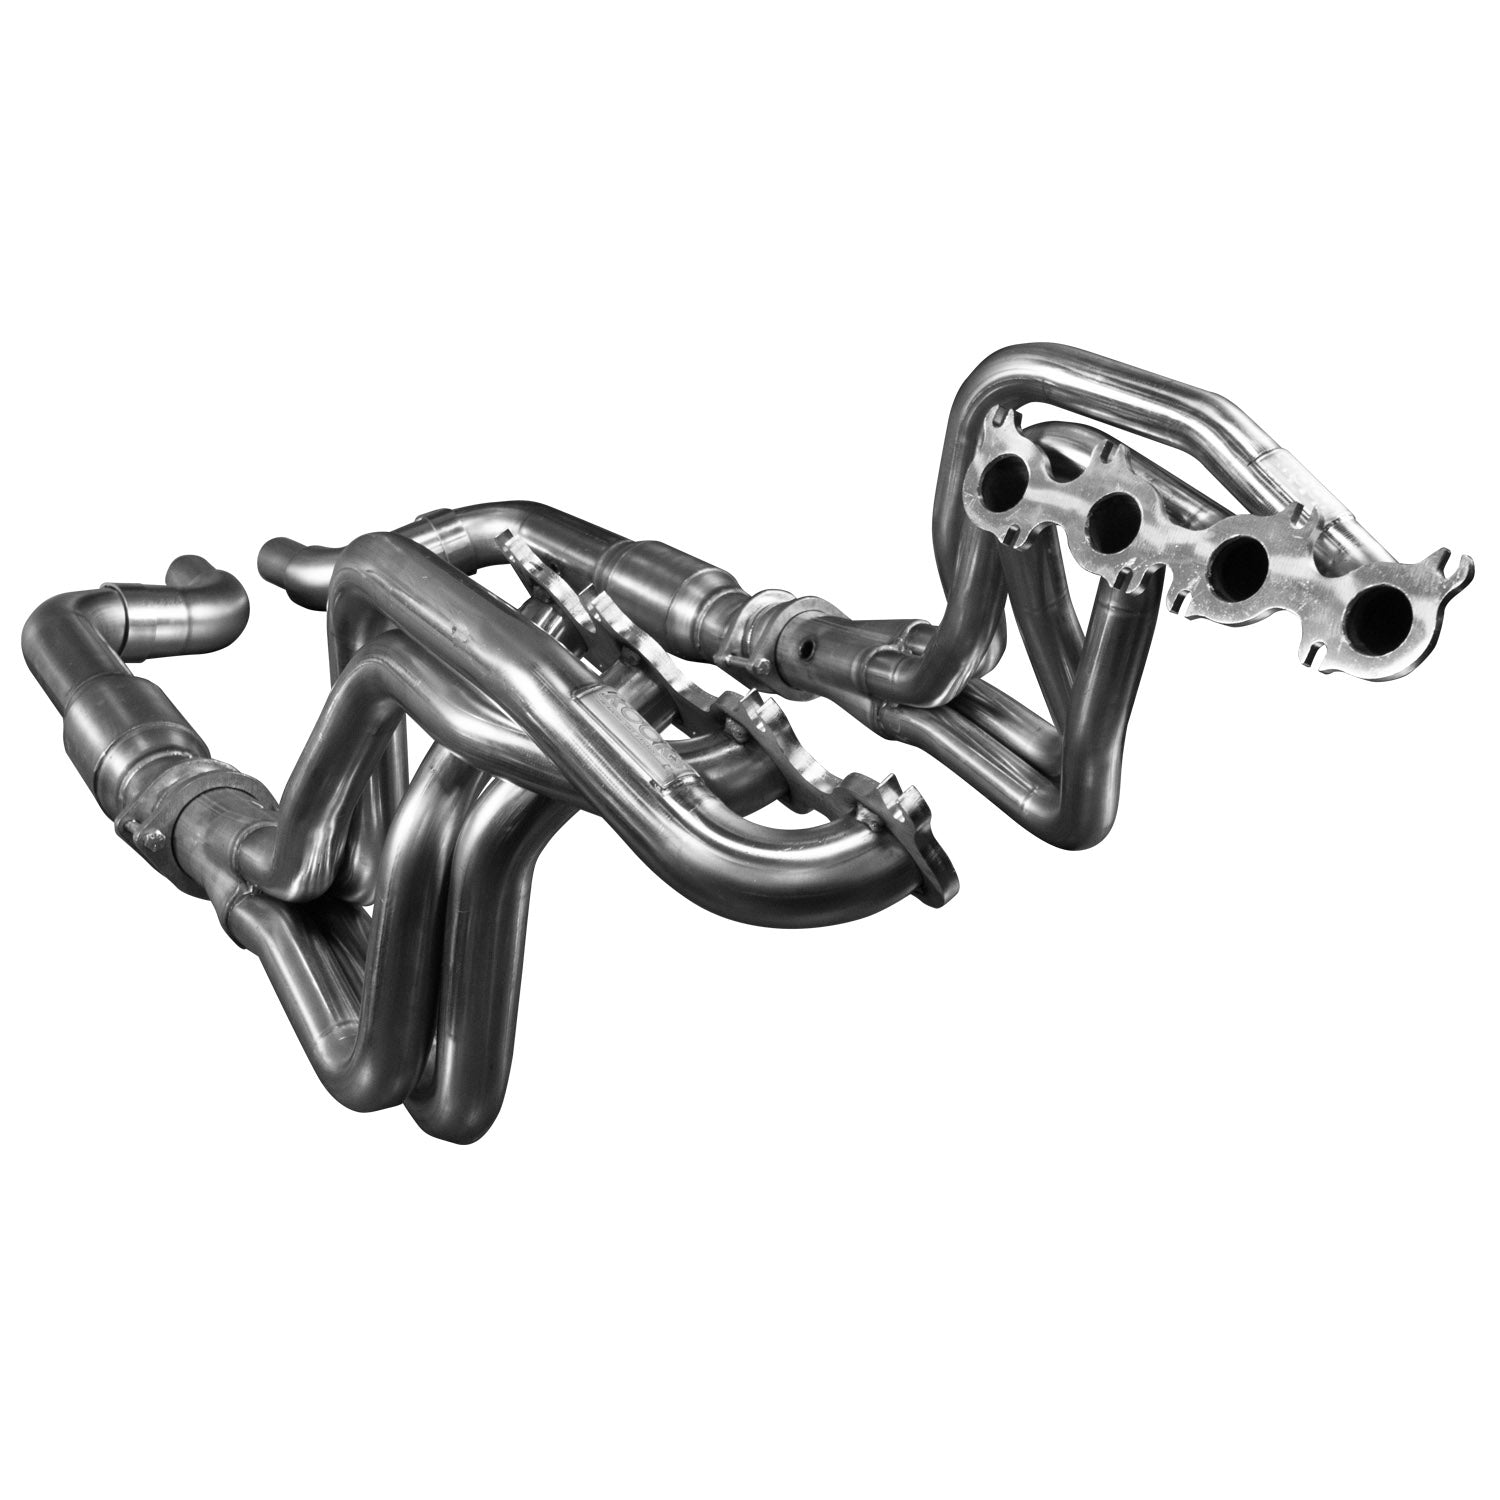 "2015 + Mustang GT 5.0L 2"" x 3"" Stainless Steel Long Tube Header w/ GREEN Catted Connection Pipe"